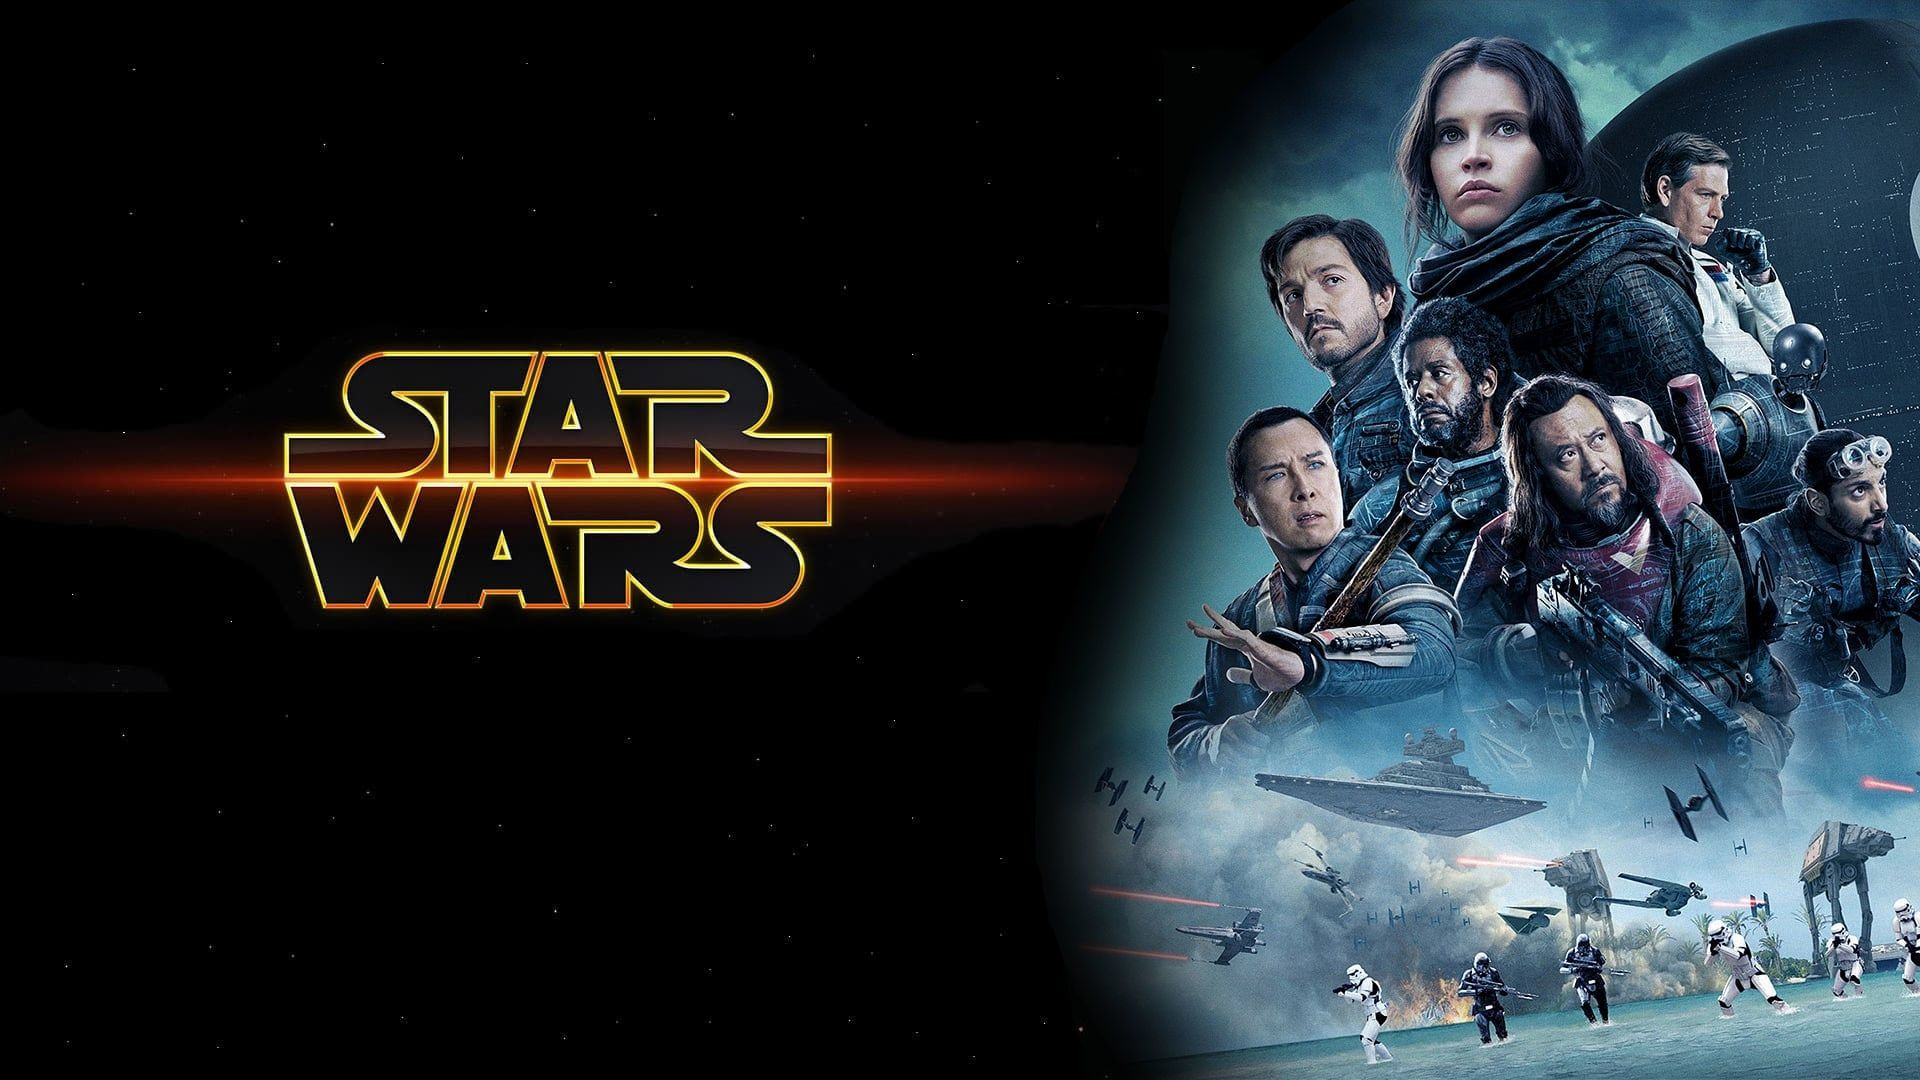 Rogue One A Star Wars Story 2016 Ganzer Film Deutsch Komplett Kino Rogue One A Star Wars Story 2016com War Stories Full Movies Online Free Free Movies Online